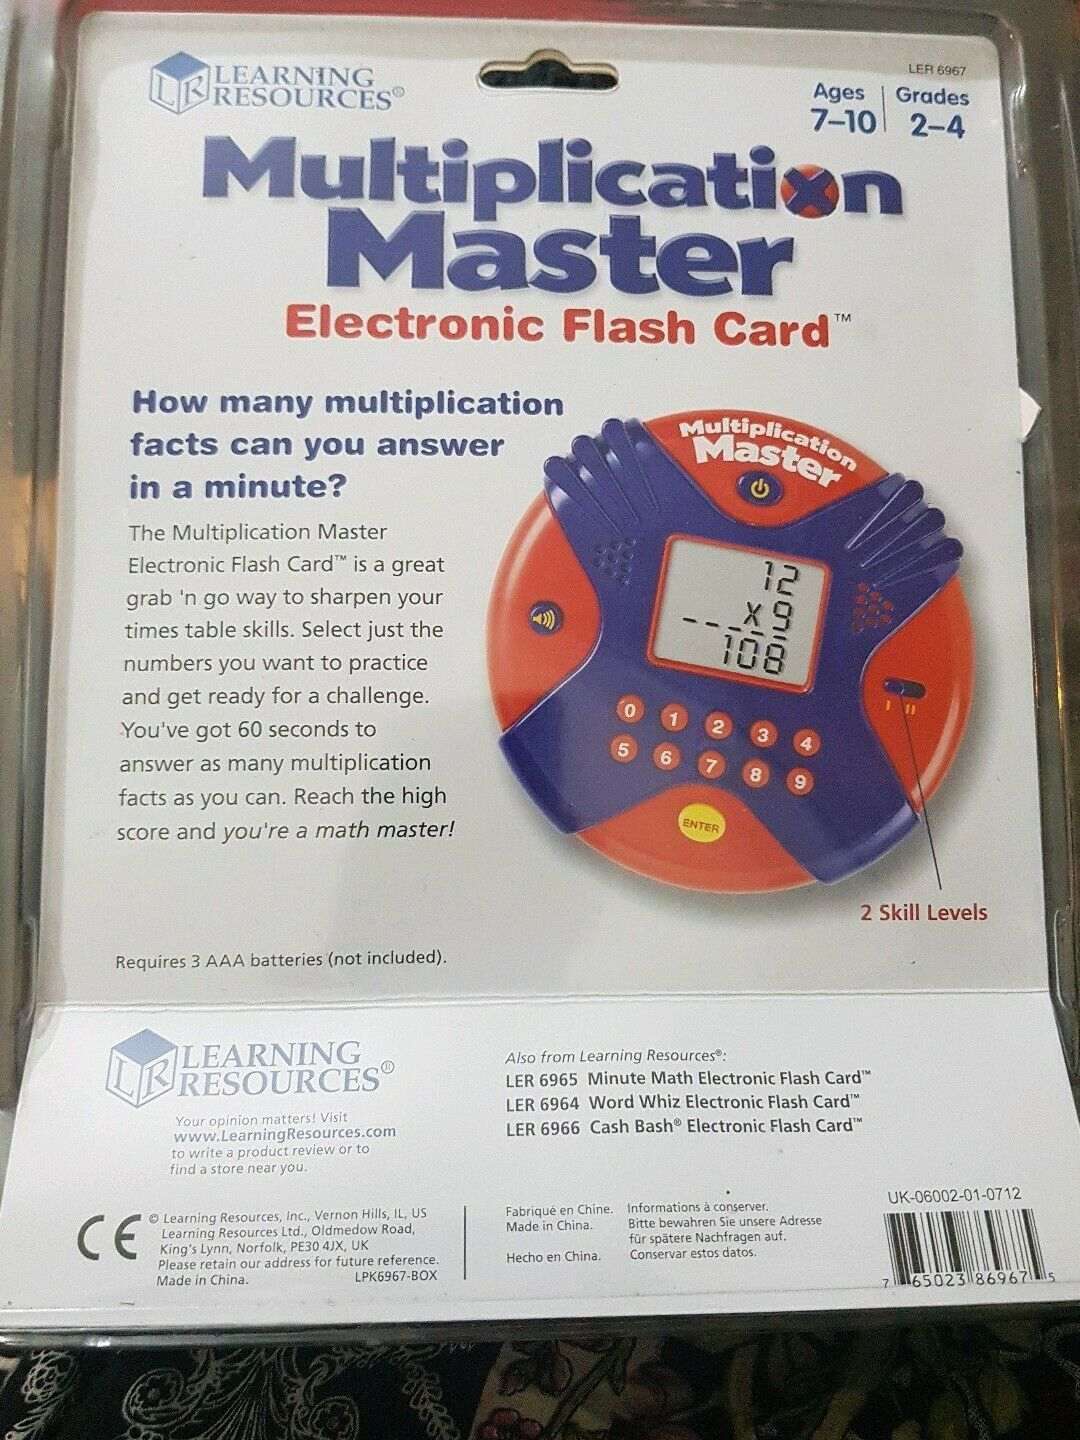 Maths **new** Learning Resources Multiplication Master